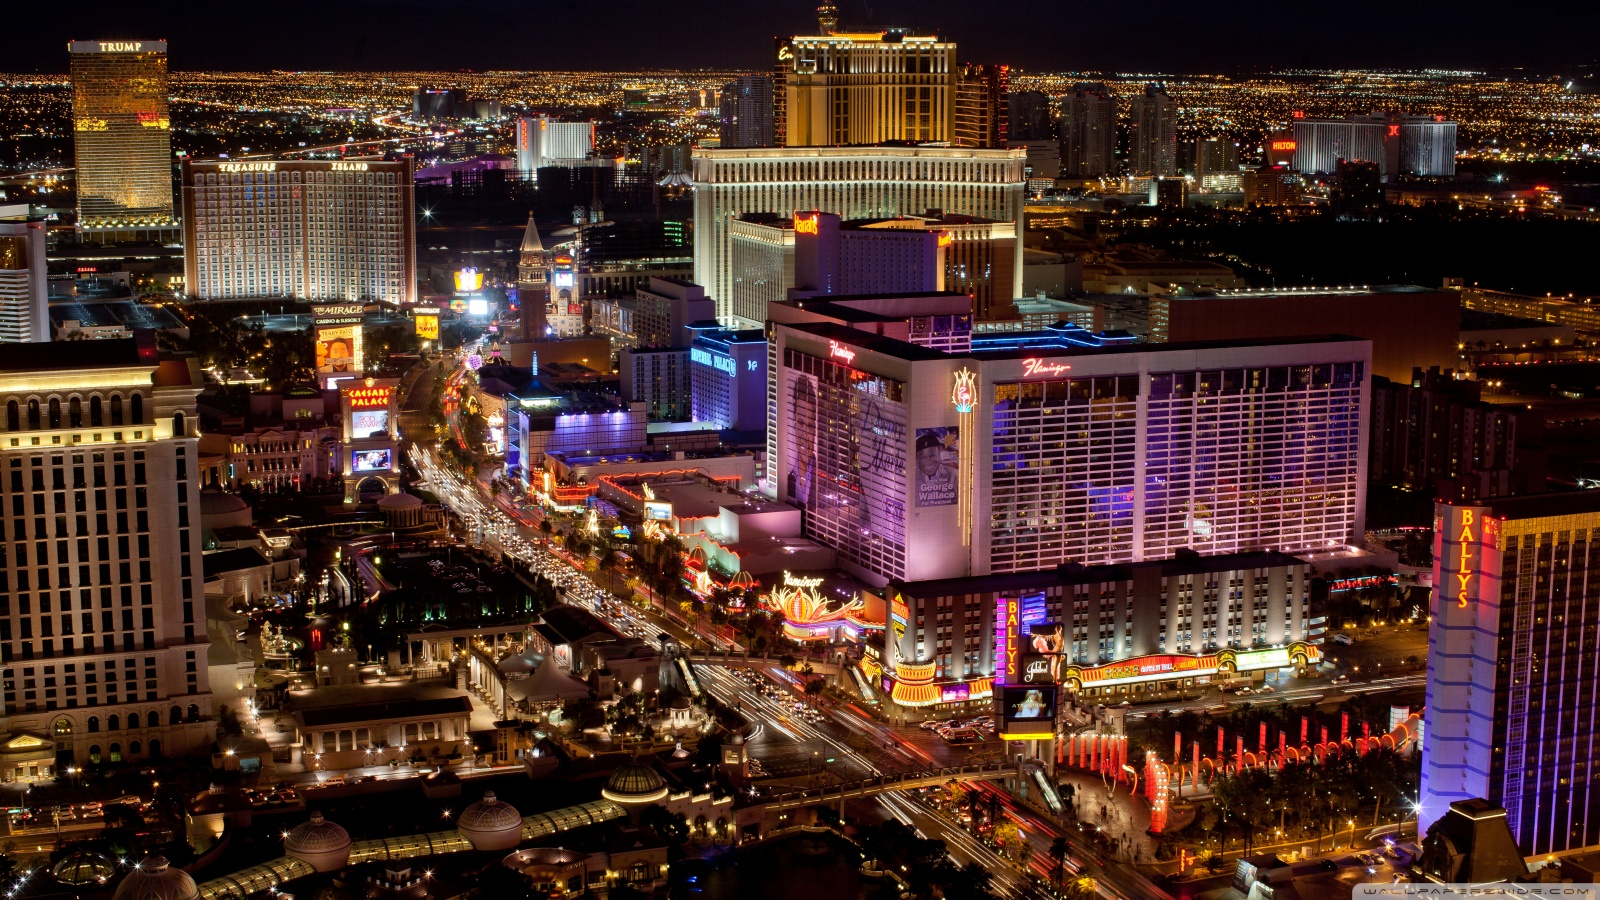 las_vegas_strip-wallpaper-1600x900.jpg